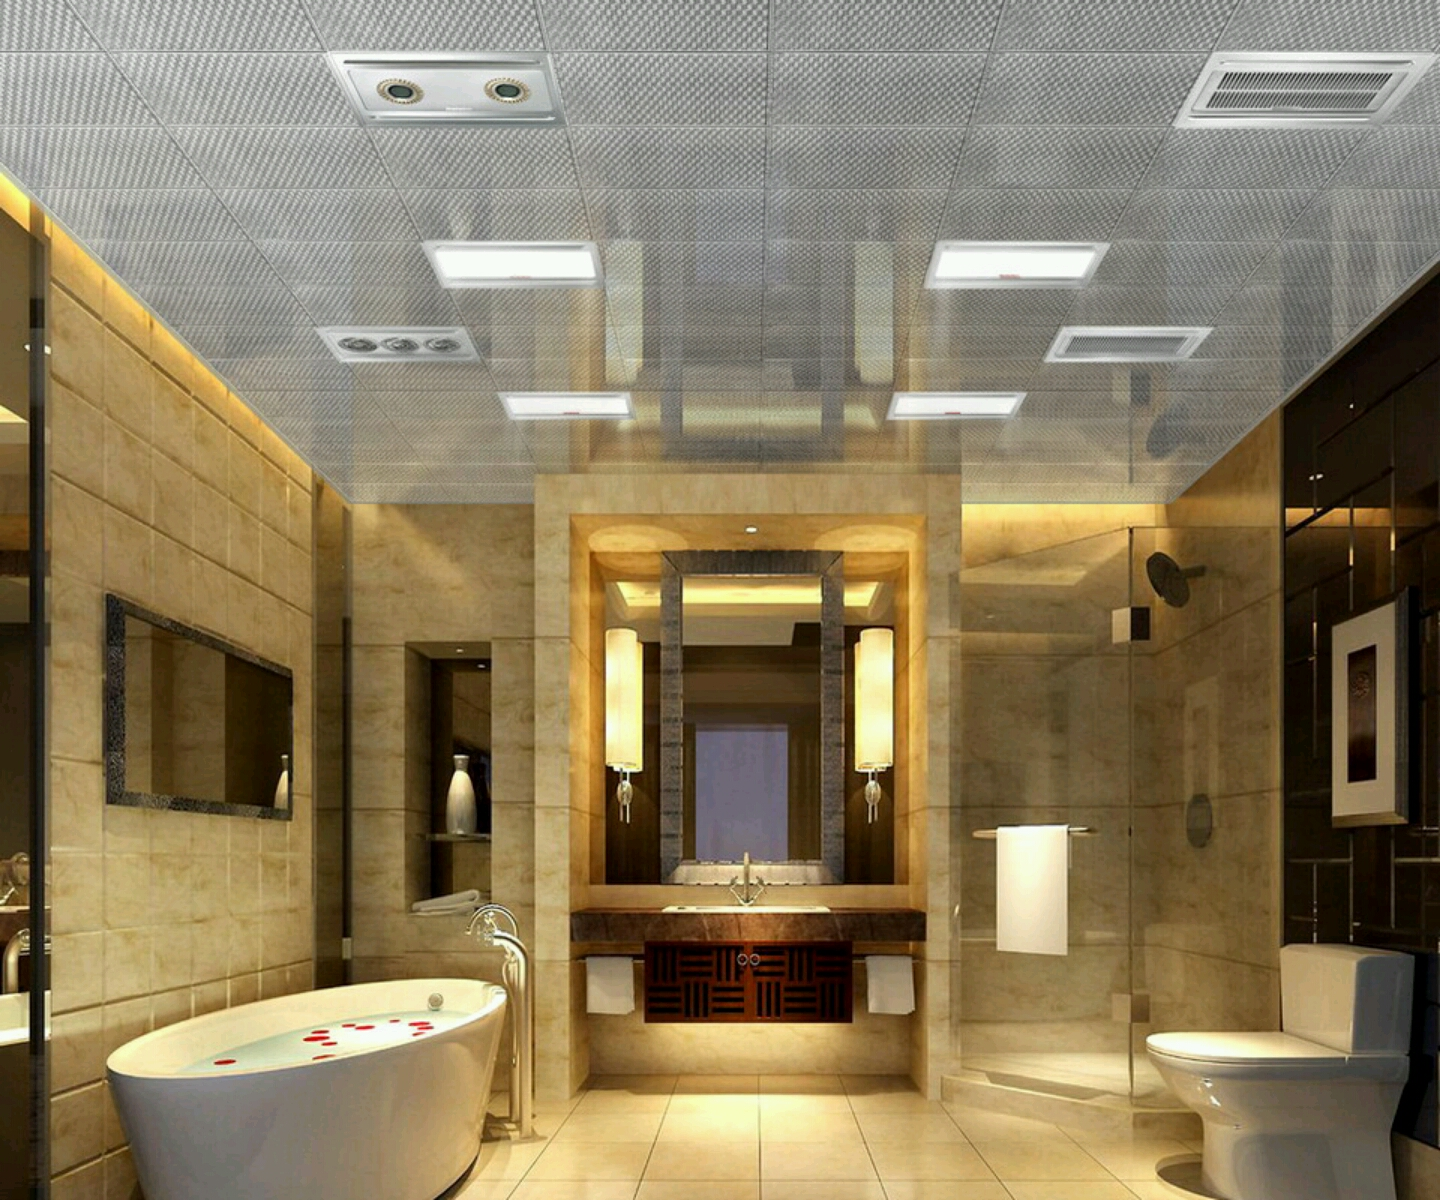 Fabulous Luxury Small Bathroom Ideas Bathrooms Tiles Bathroom Ideas For Largest Home Design Picture Inspirations Pitcheantrous